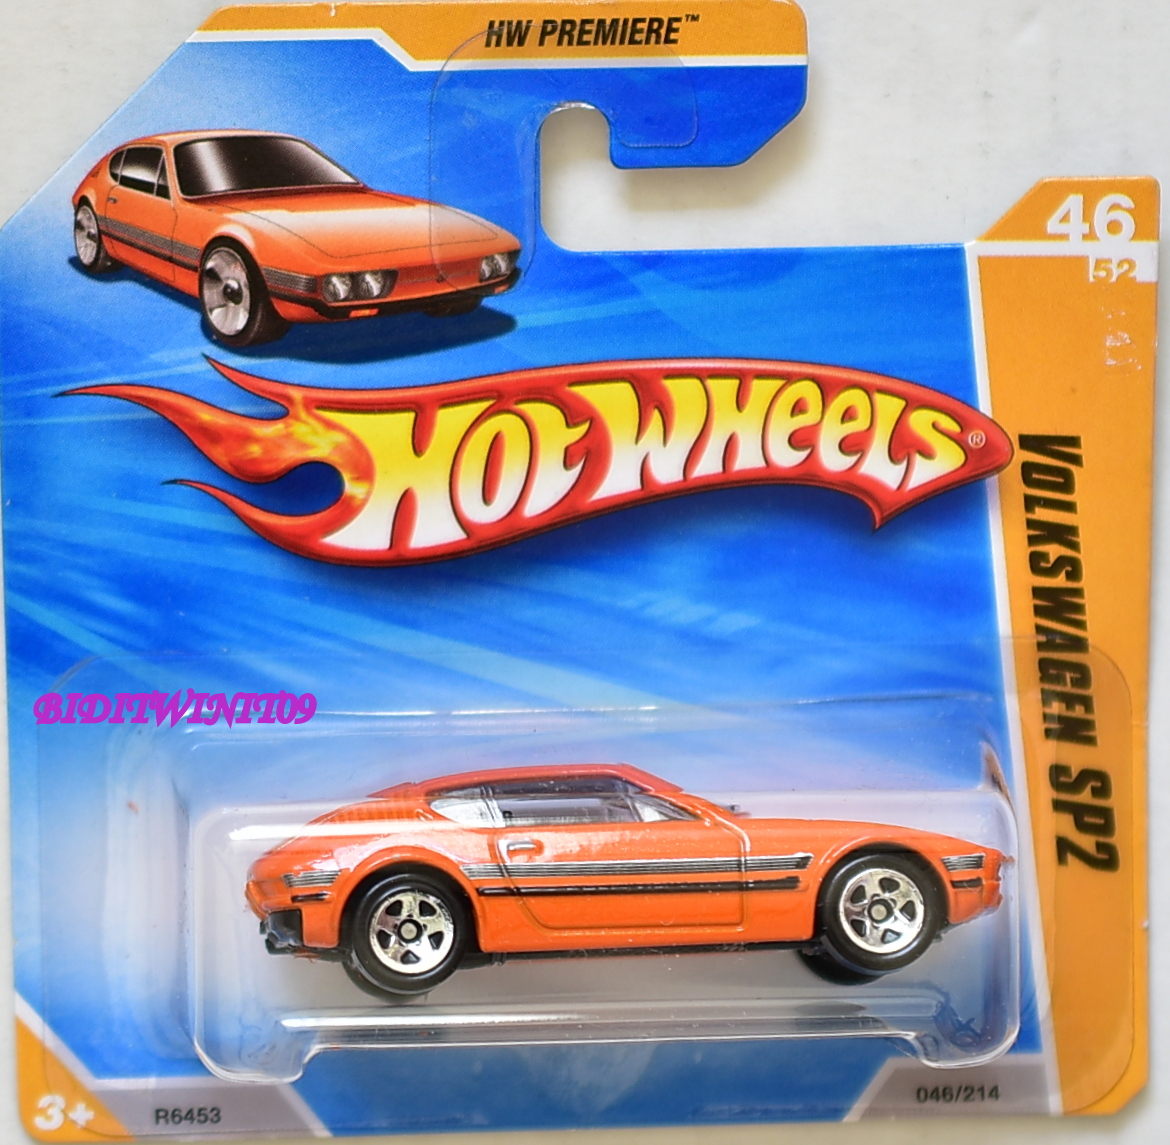 HOT WHEELS 2010 HW PREMIERE VOLKSWAGEN SP2 #46/52 ORANGE SHORT CARD